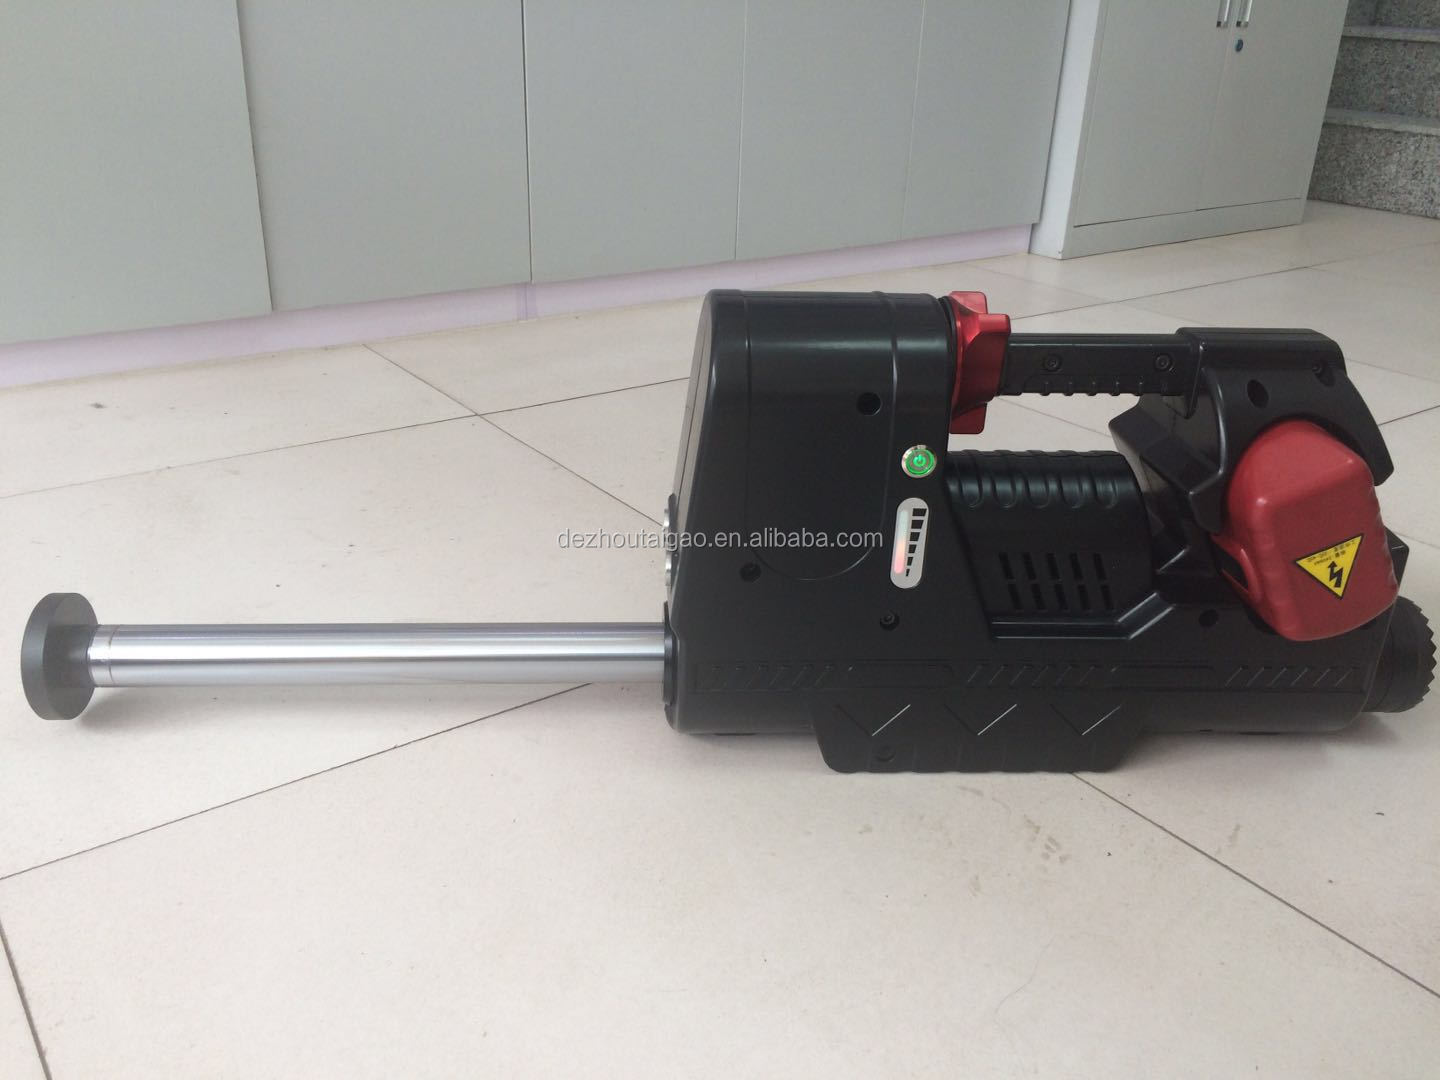 Electric hydraulic rescue equipment jack or jacking device